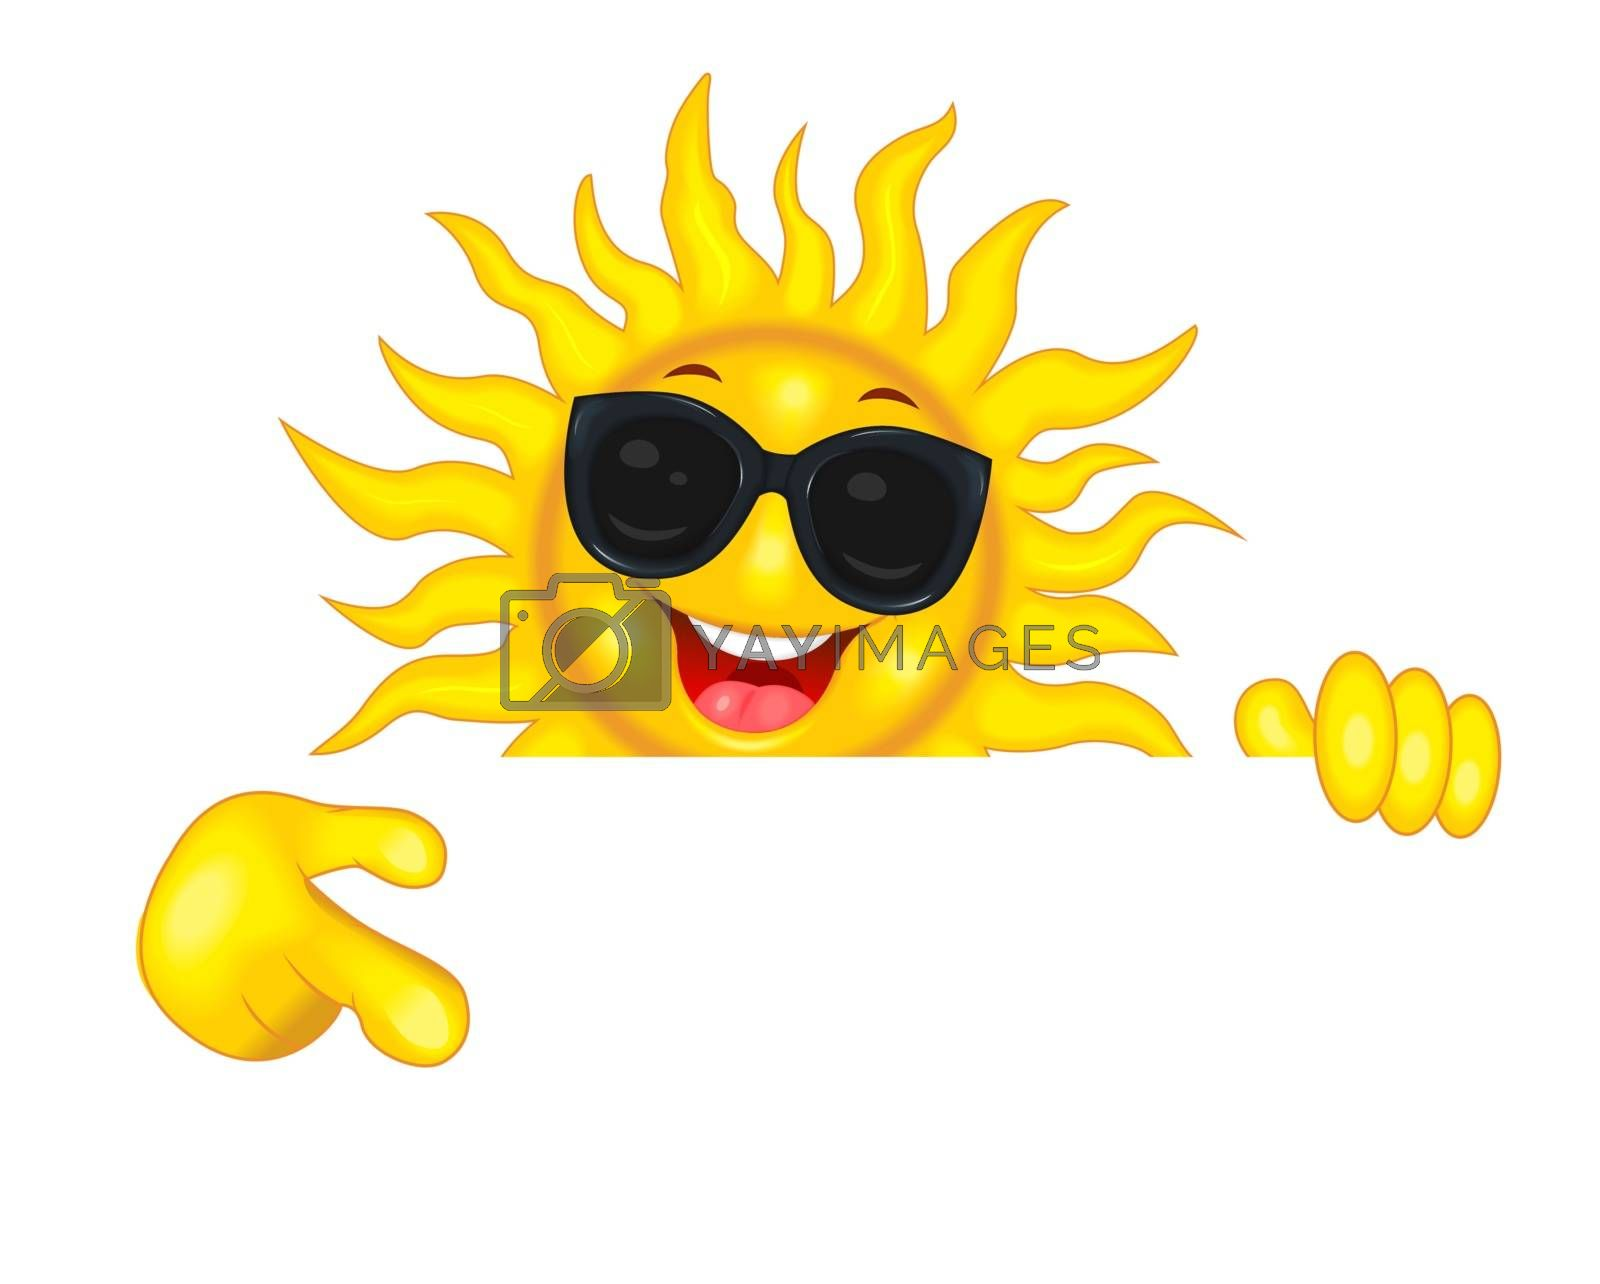 Joyful sun in sunglasses points a hand by liolle